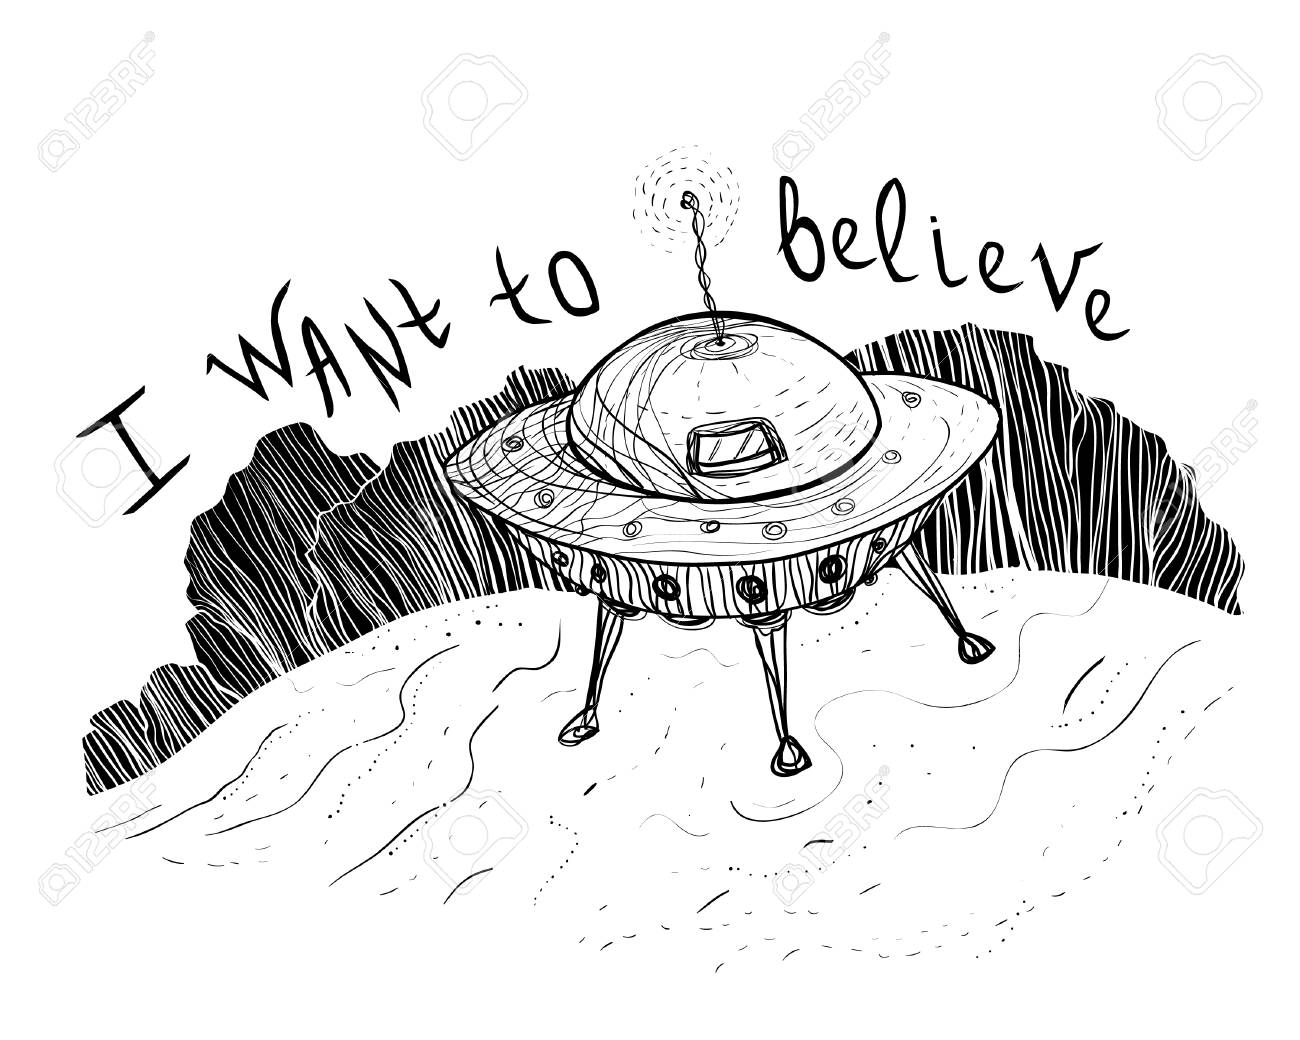 UFO aliens near a forest funny hand drawn sketch illustration, print design on a poster or T-shirt. - 101107386